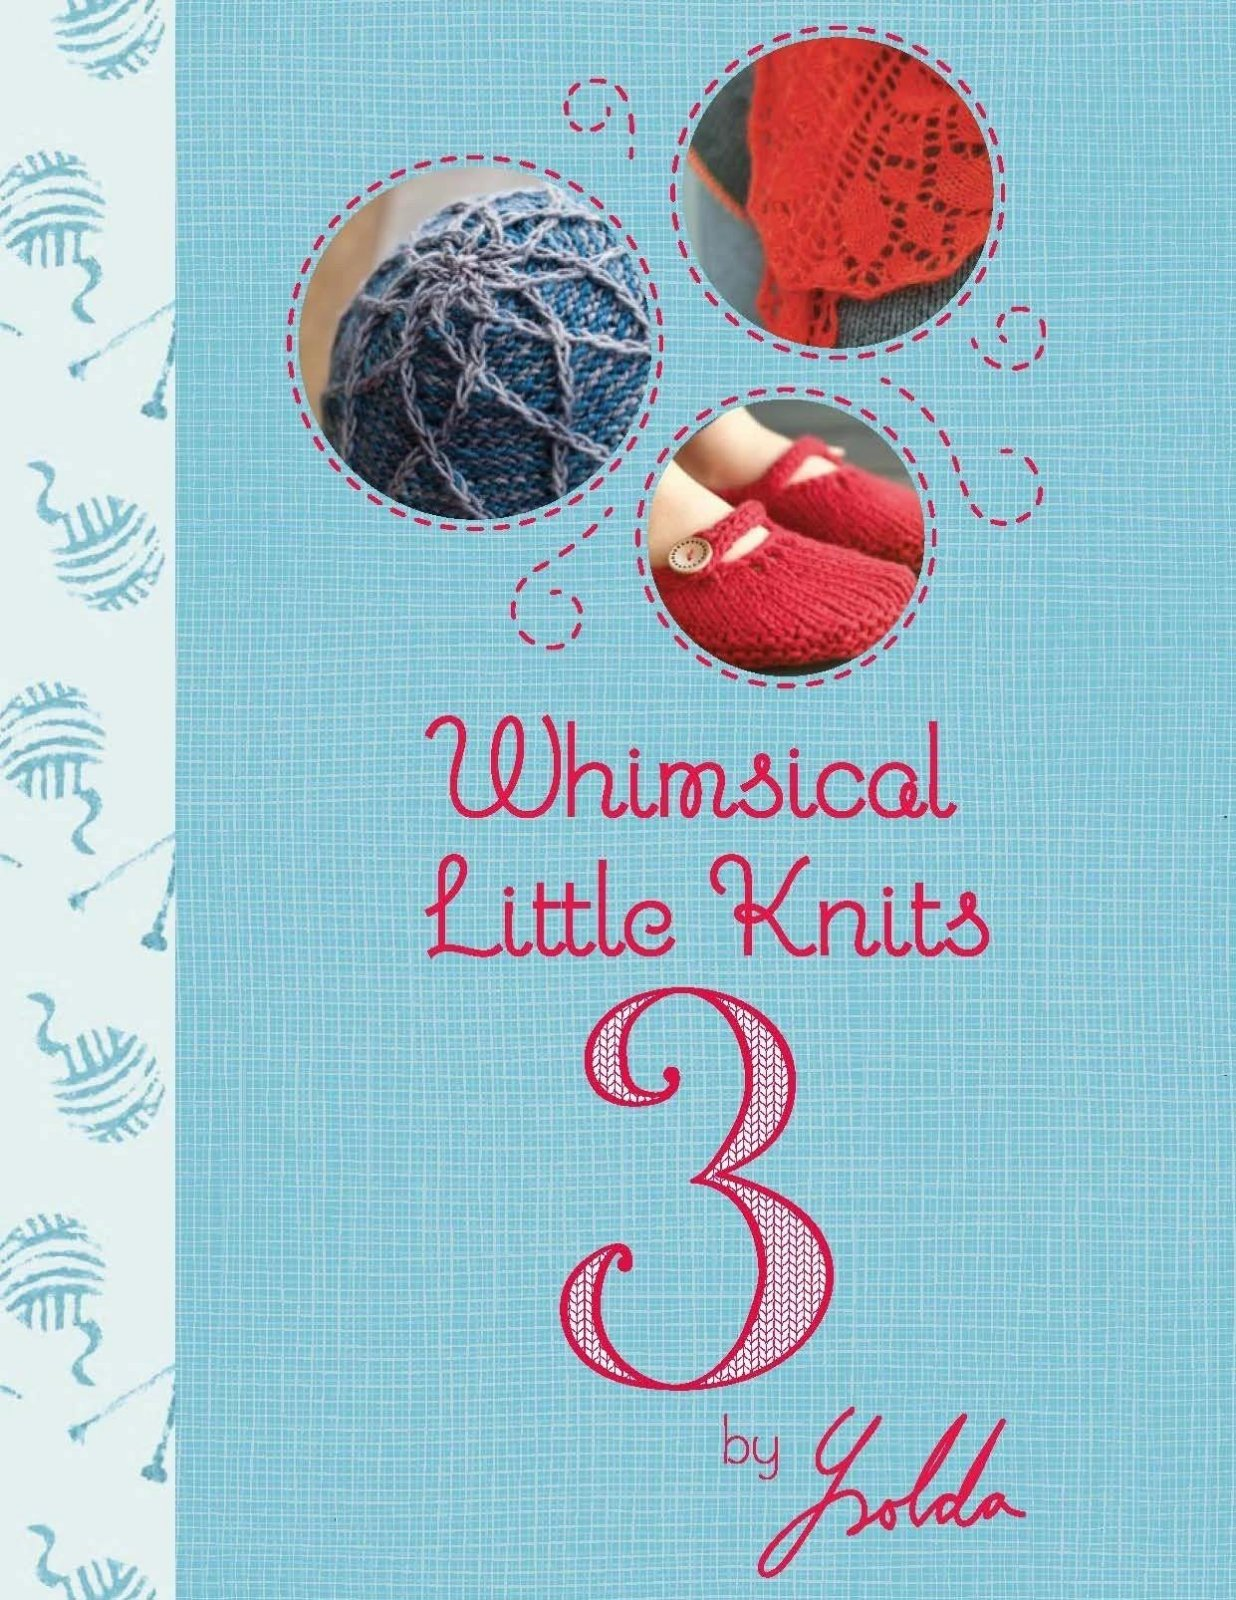 Book:  Whimsical Little Knits 3 by Ysolda Teague